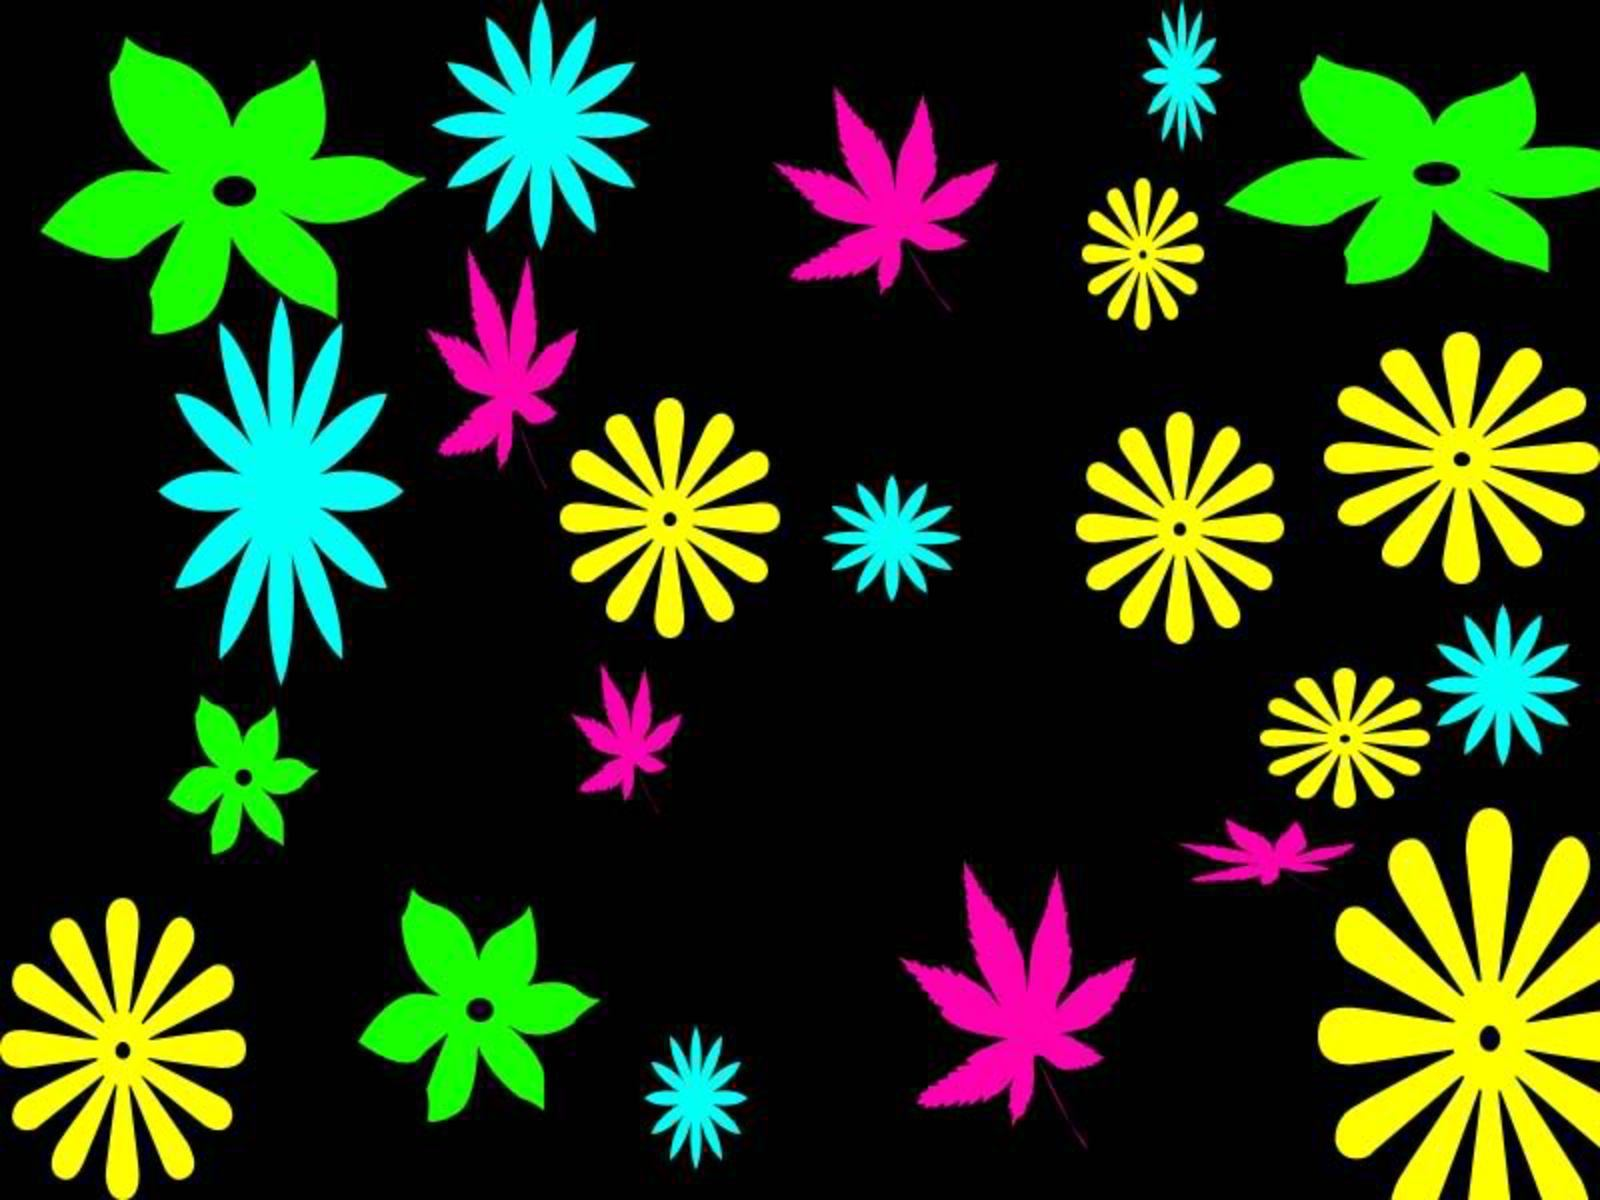 neon colors rock images flowers hd wallpaper and